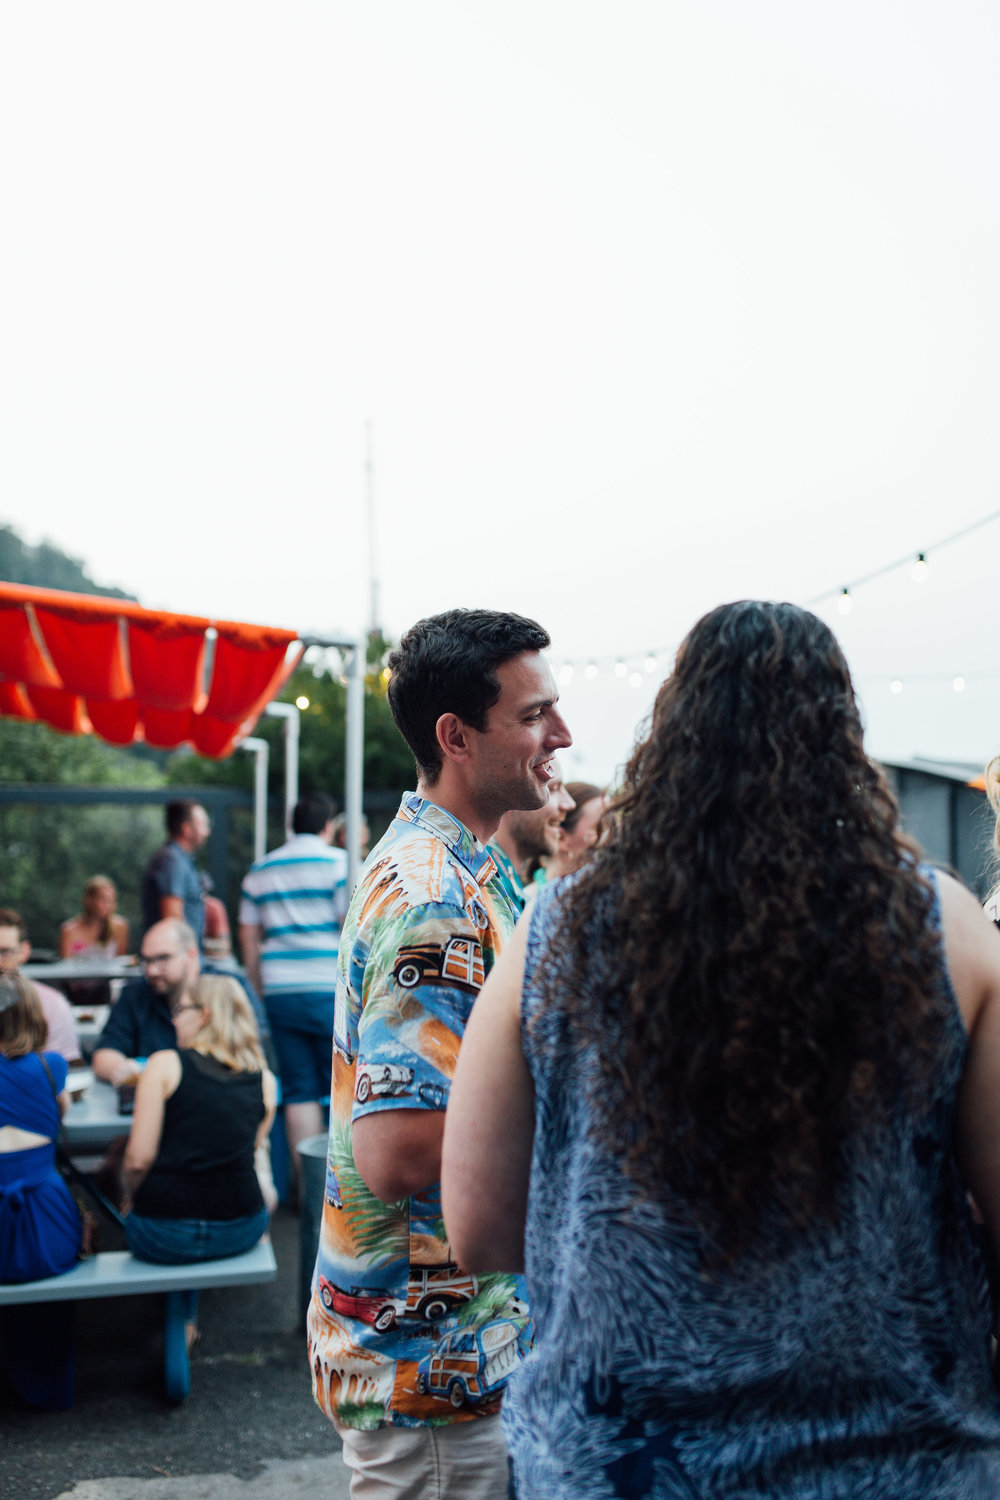 SeattleEventAug2018(155of238).jpg